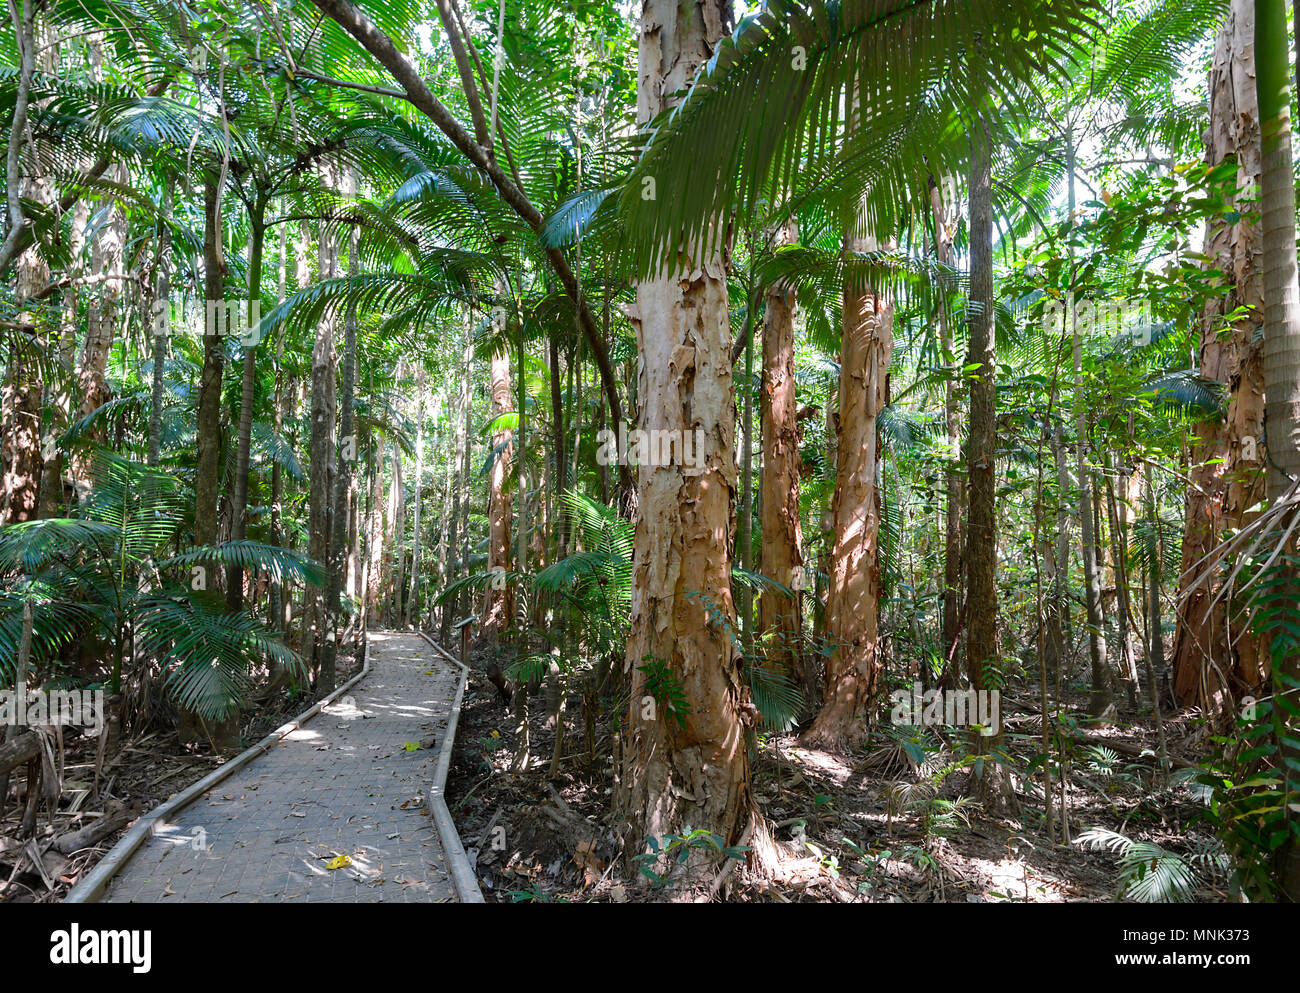 The Boardwalk at Cattana Wetlands, a rehabilitated nature conservation park in Smithfield, near Cairns, Far North Queensland, FNQ, QLD, Australia - Stock Image